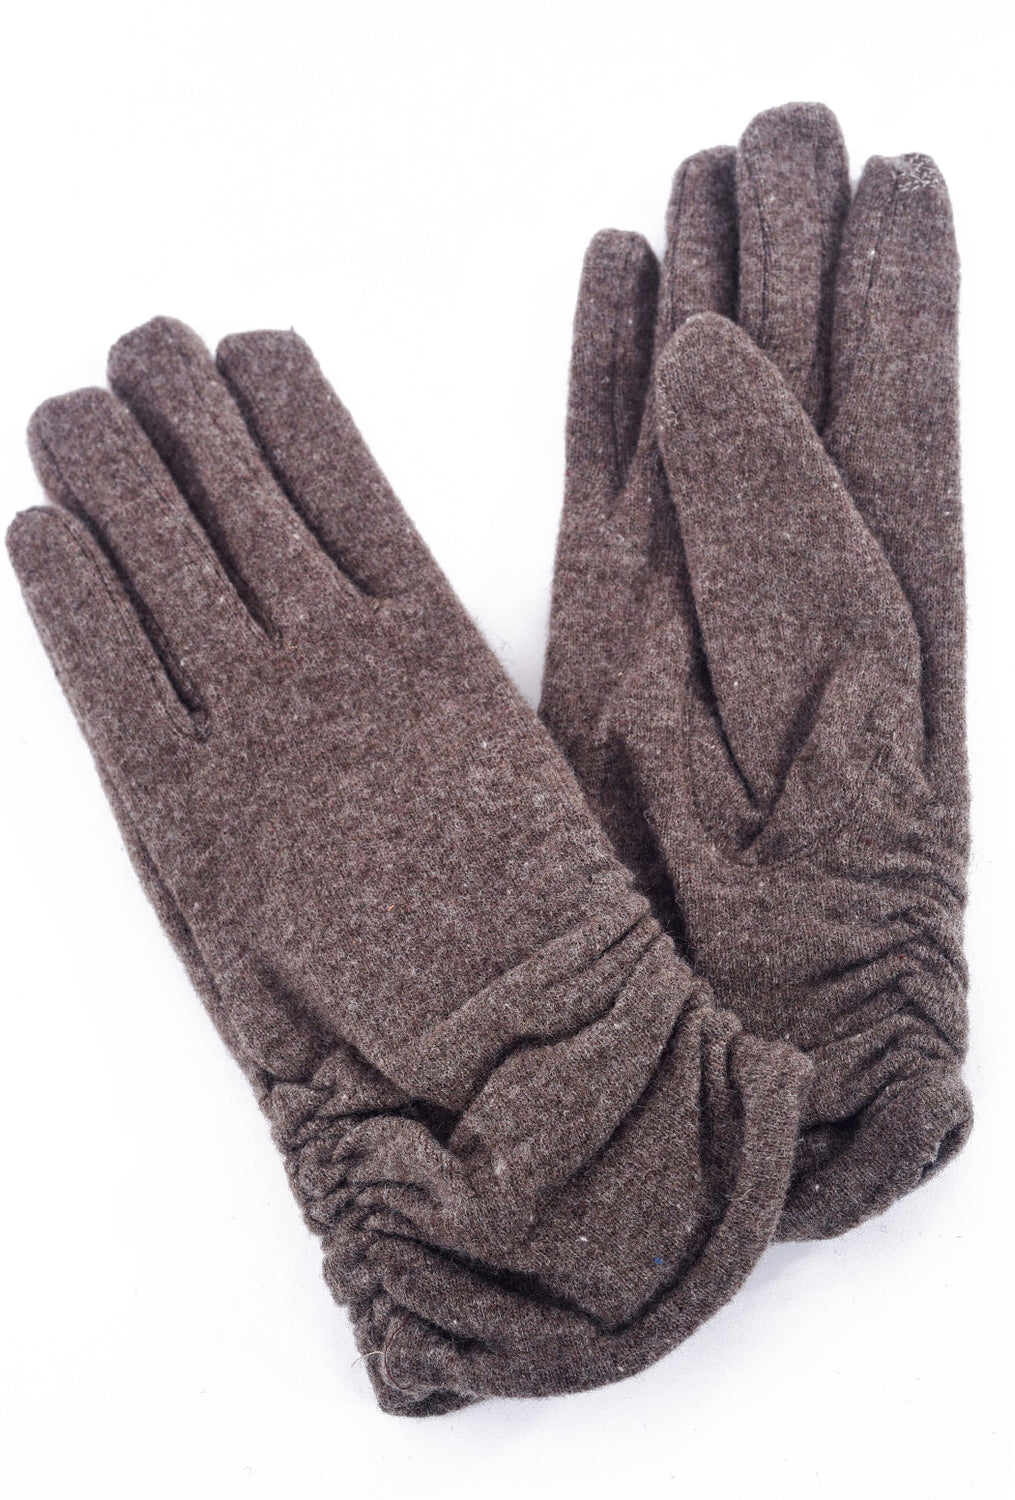 Santacana Madrid Tech-Touch Wool & Cashmere Gloves, Dark Taupe One Size Taupe